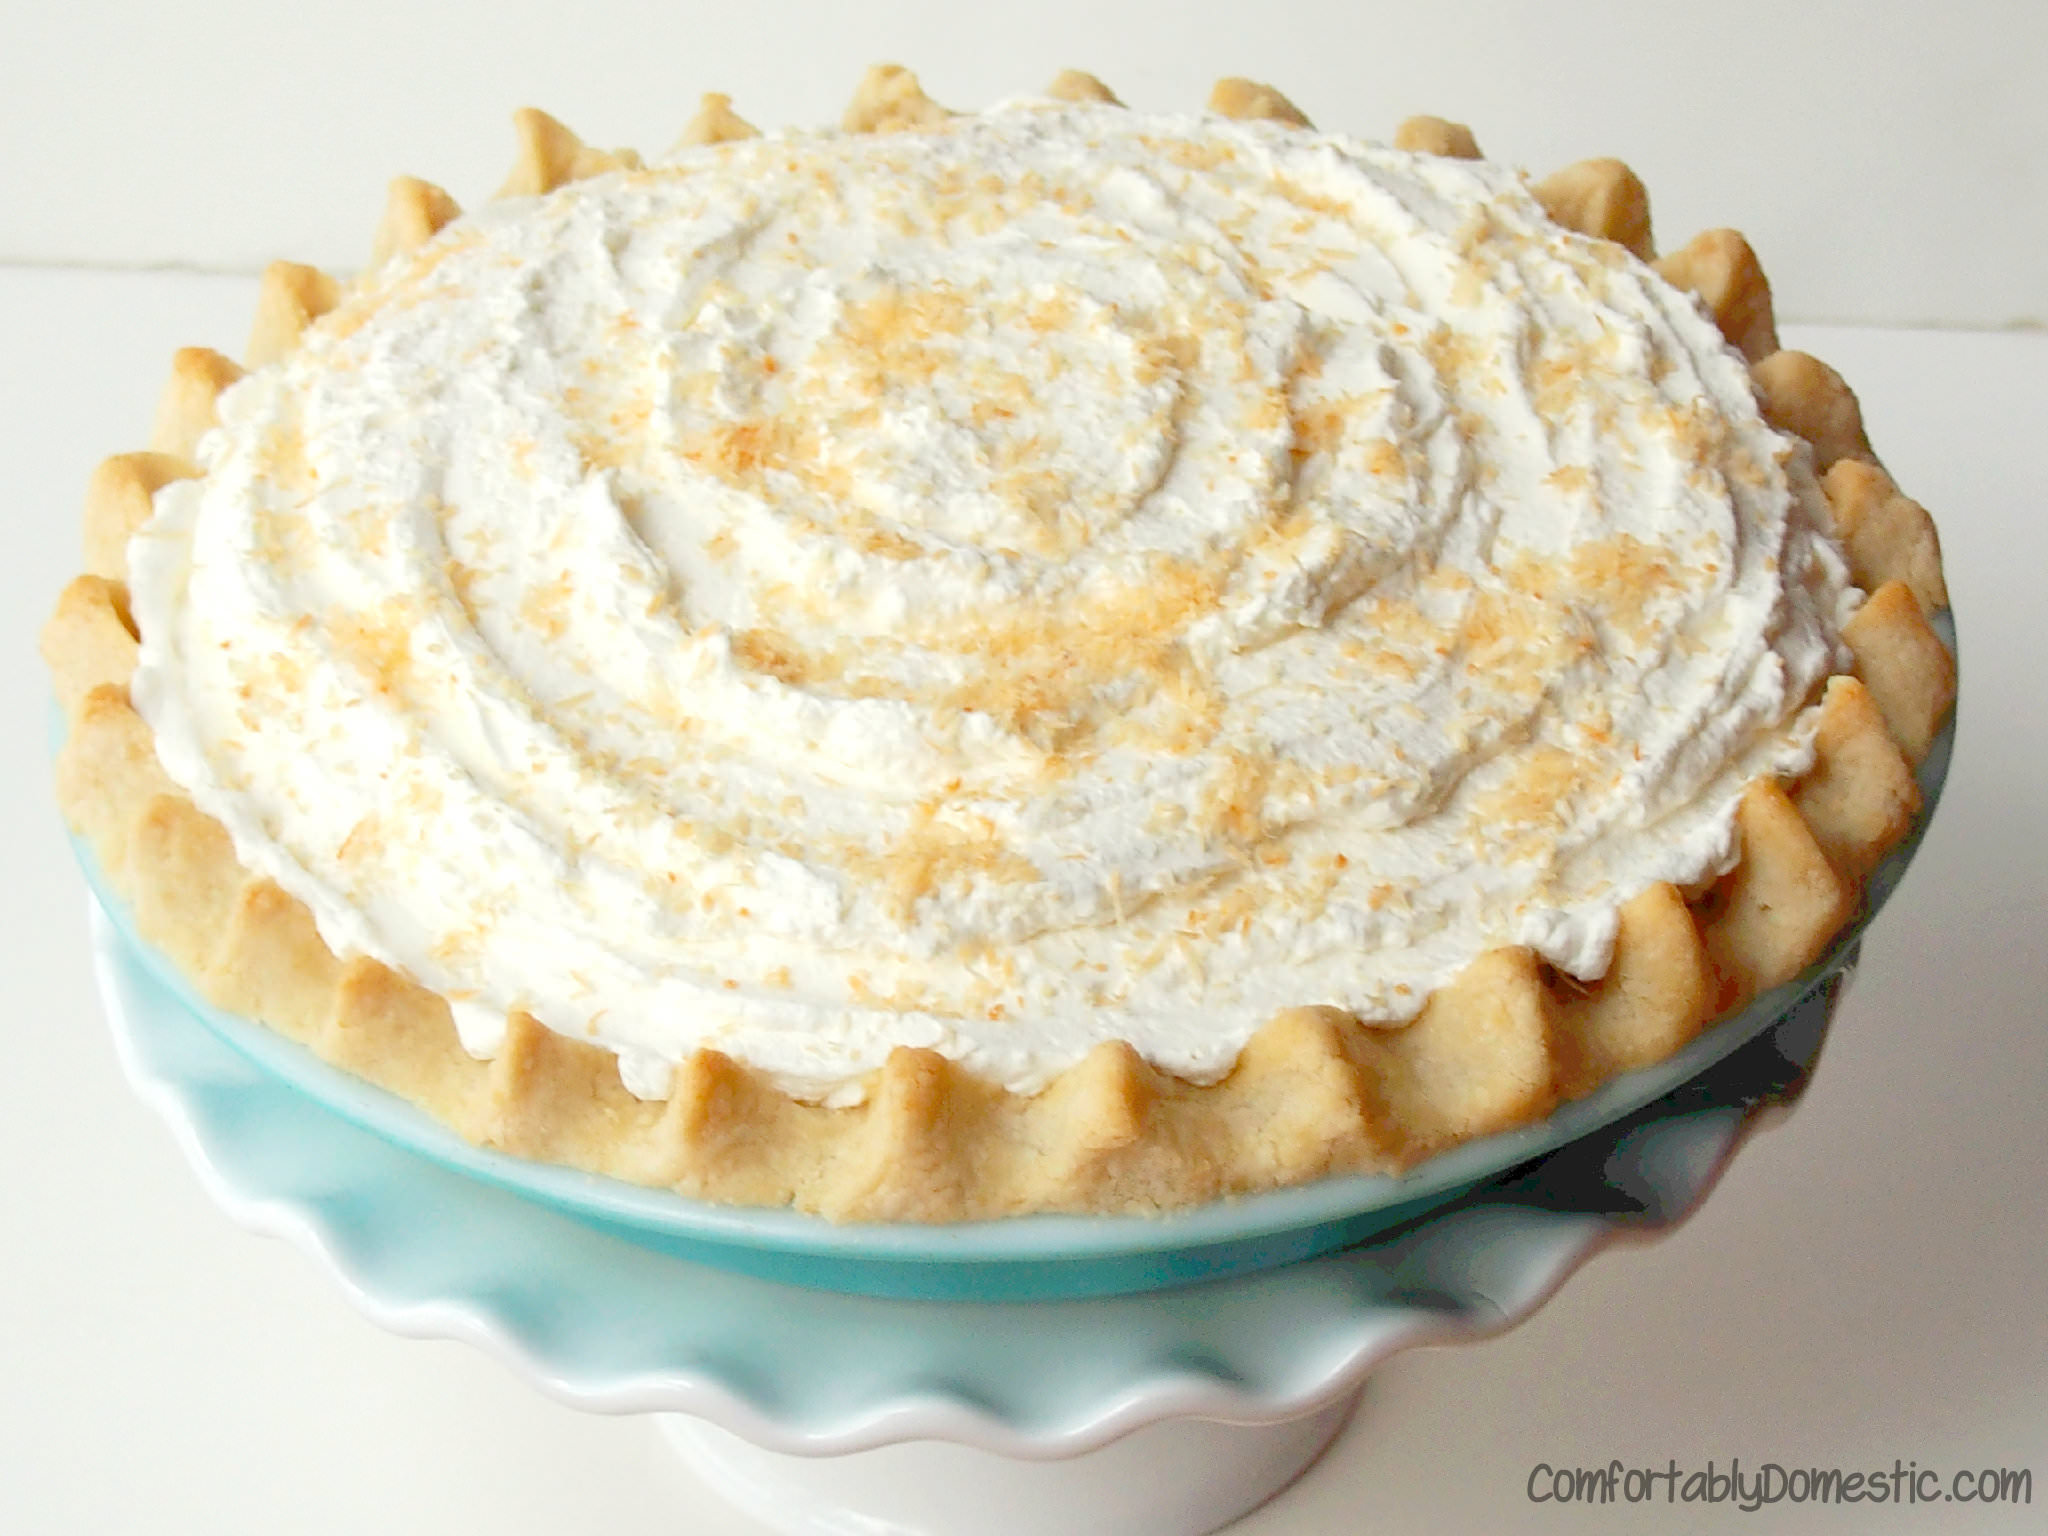 Sugar Free Gluten Free, Allergy Friendly Coconut Cream Pie from ComfortablyDomestic.com